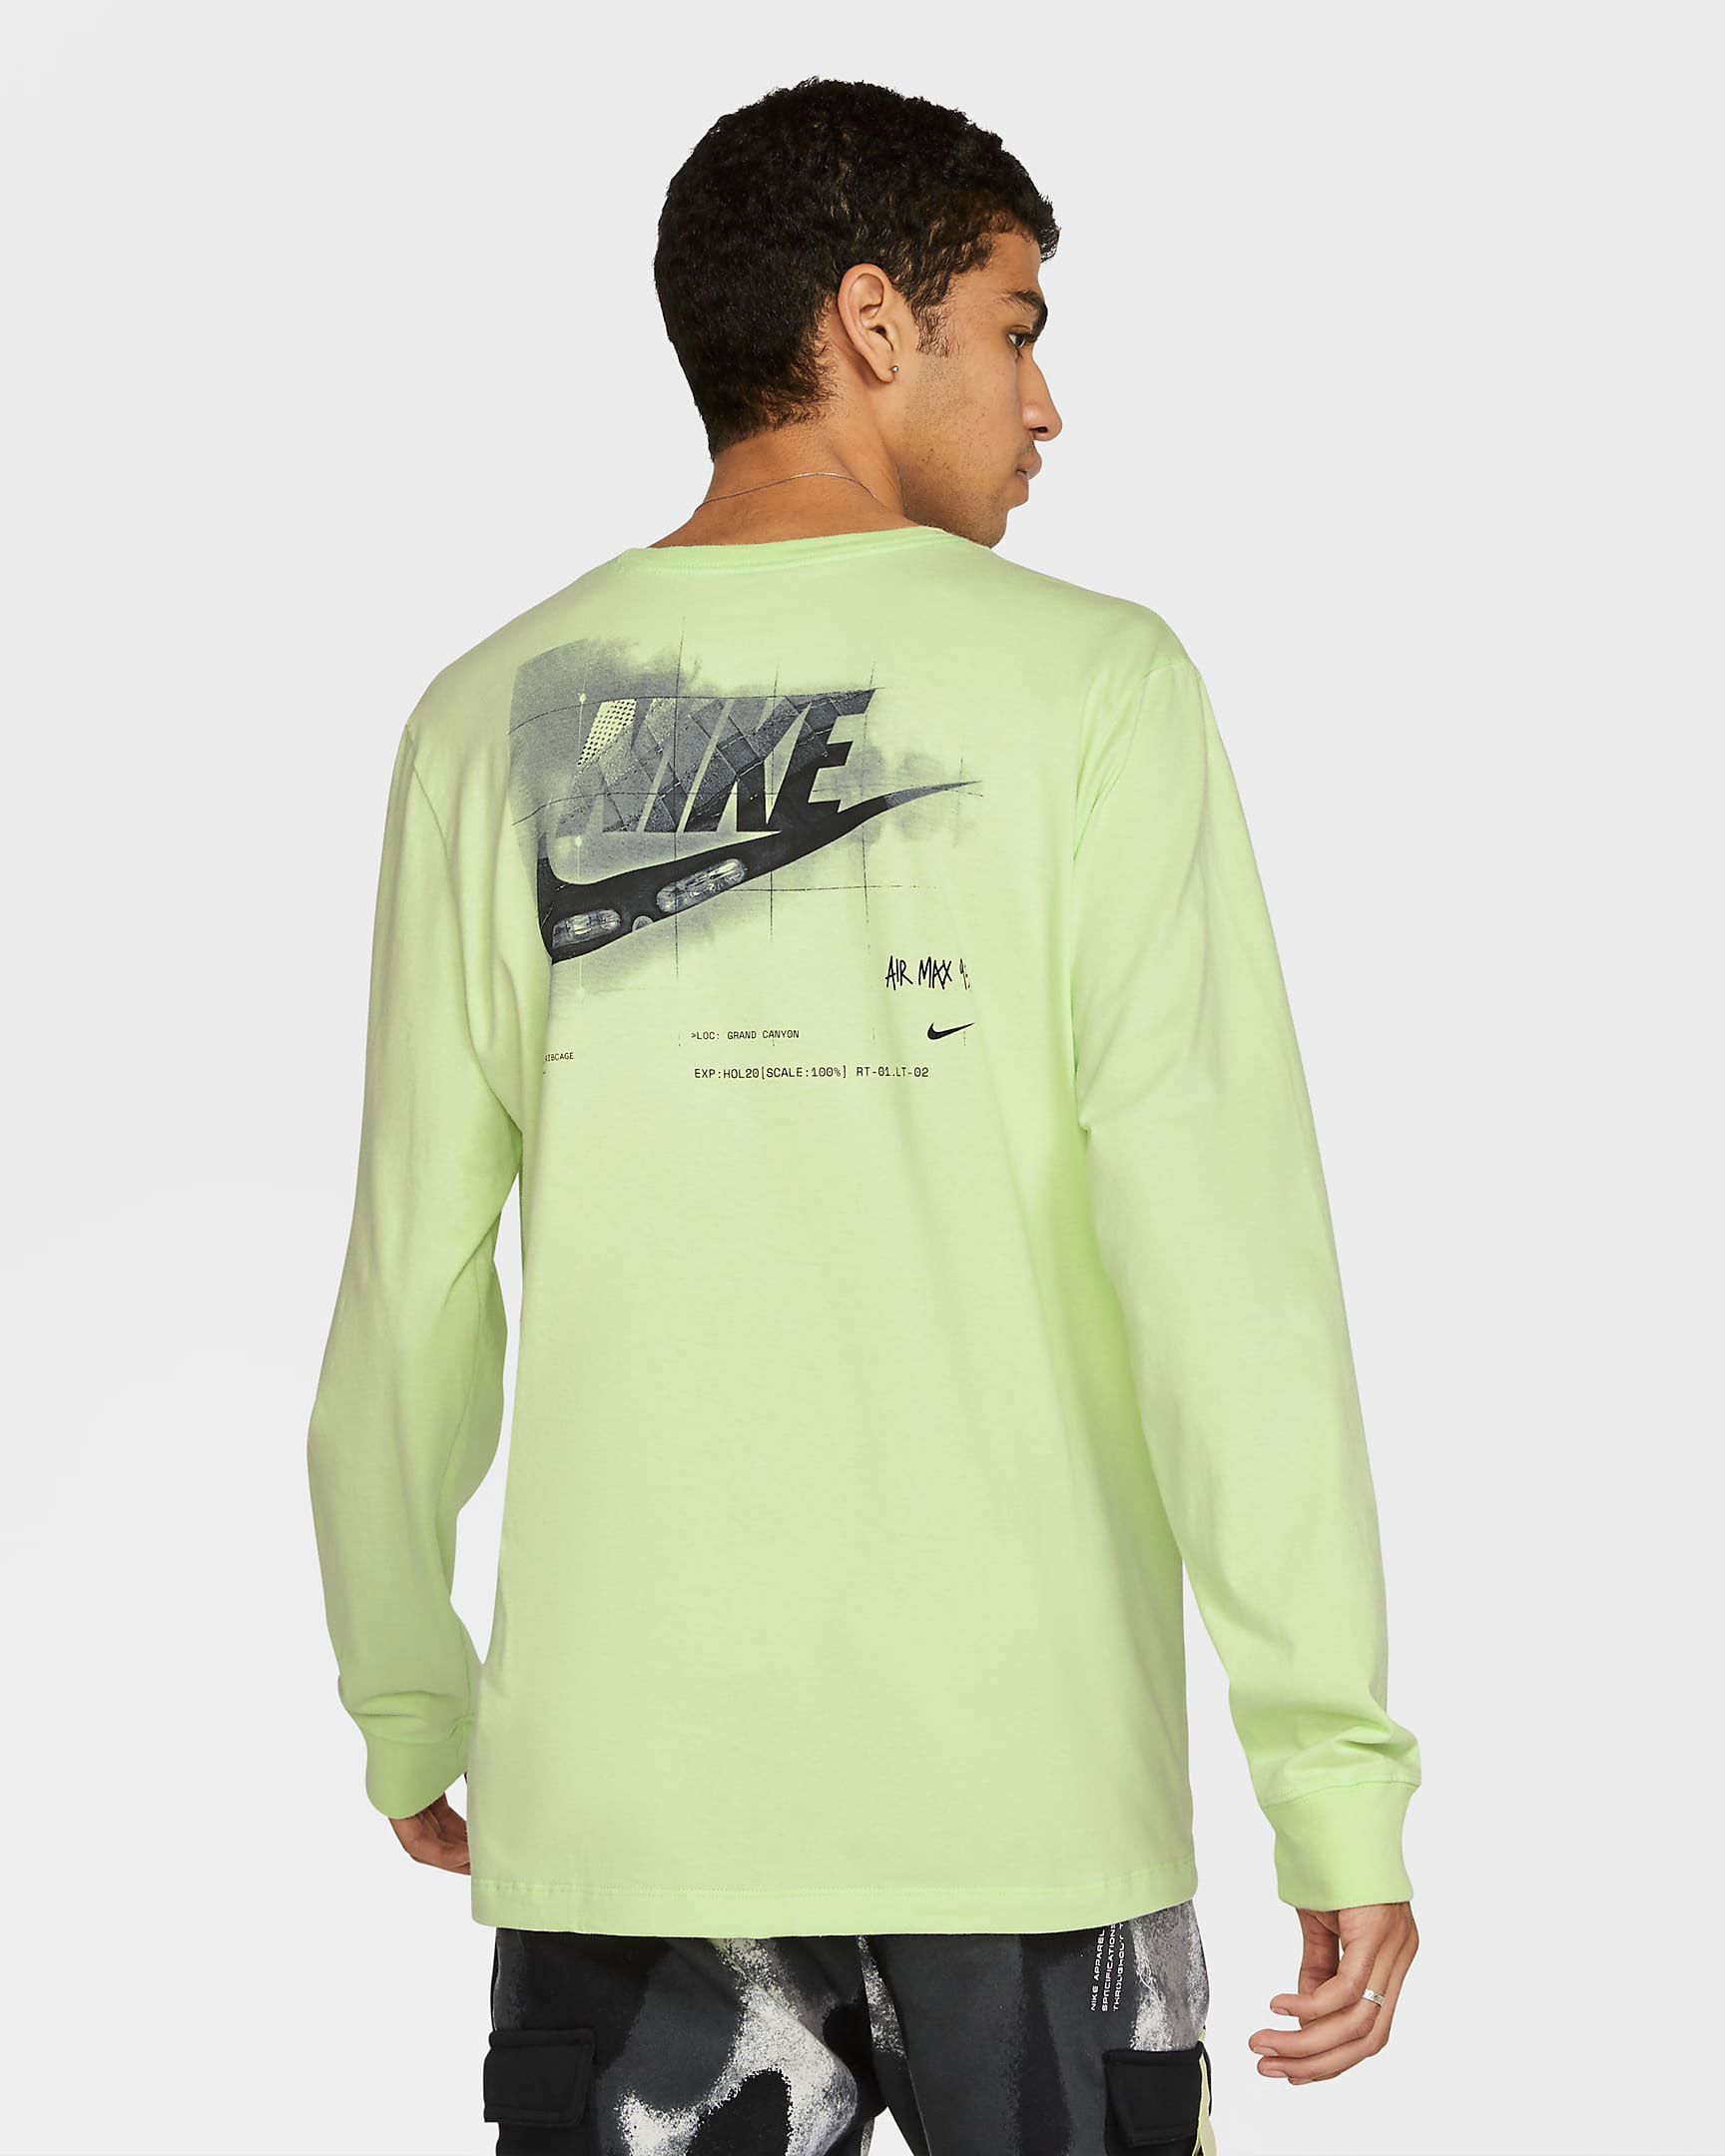 nike-air-max-95-neon-2020-long-sleeve-shirt-2